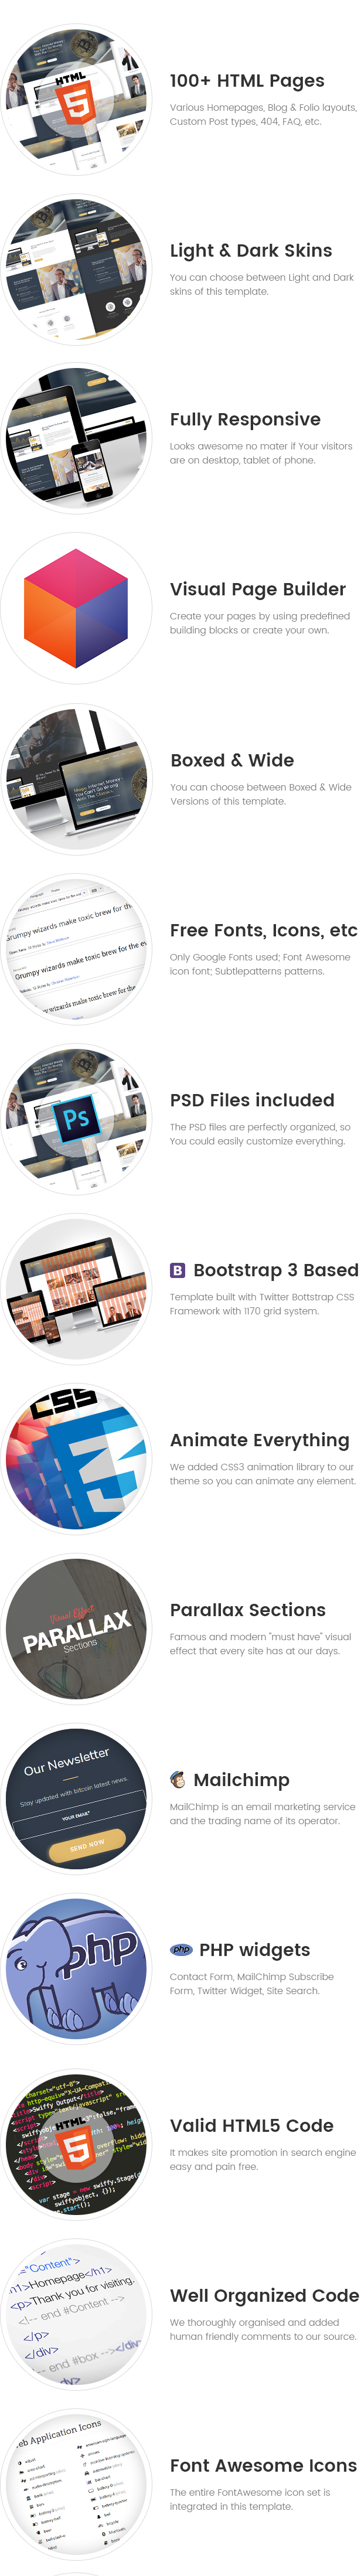 BitChain - Bitcoin And Digital Currency HTML Template